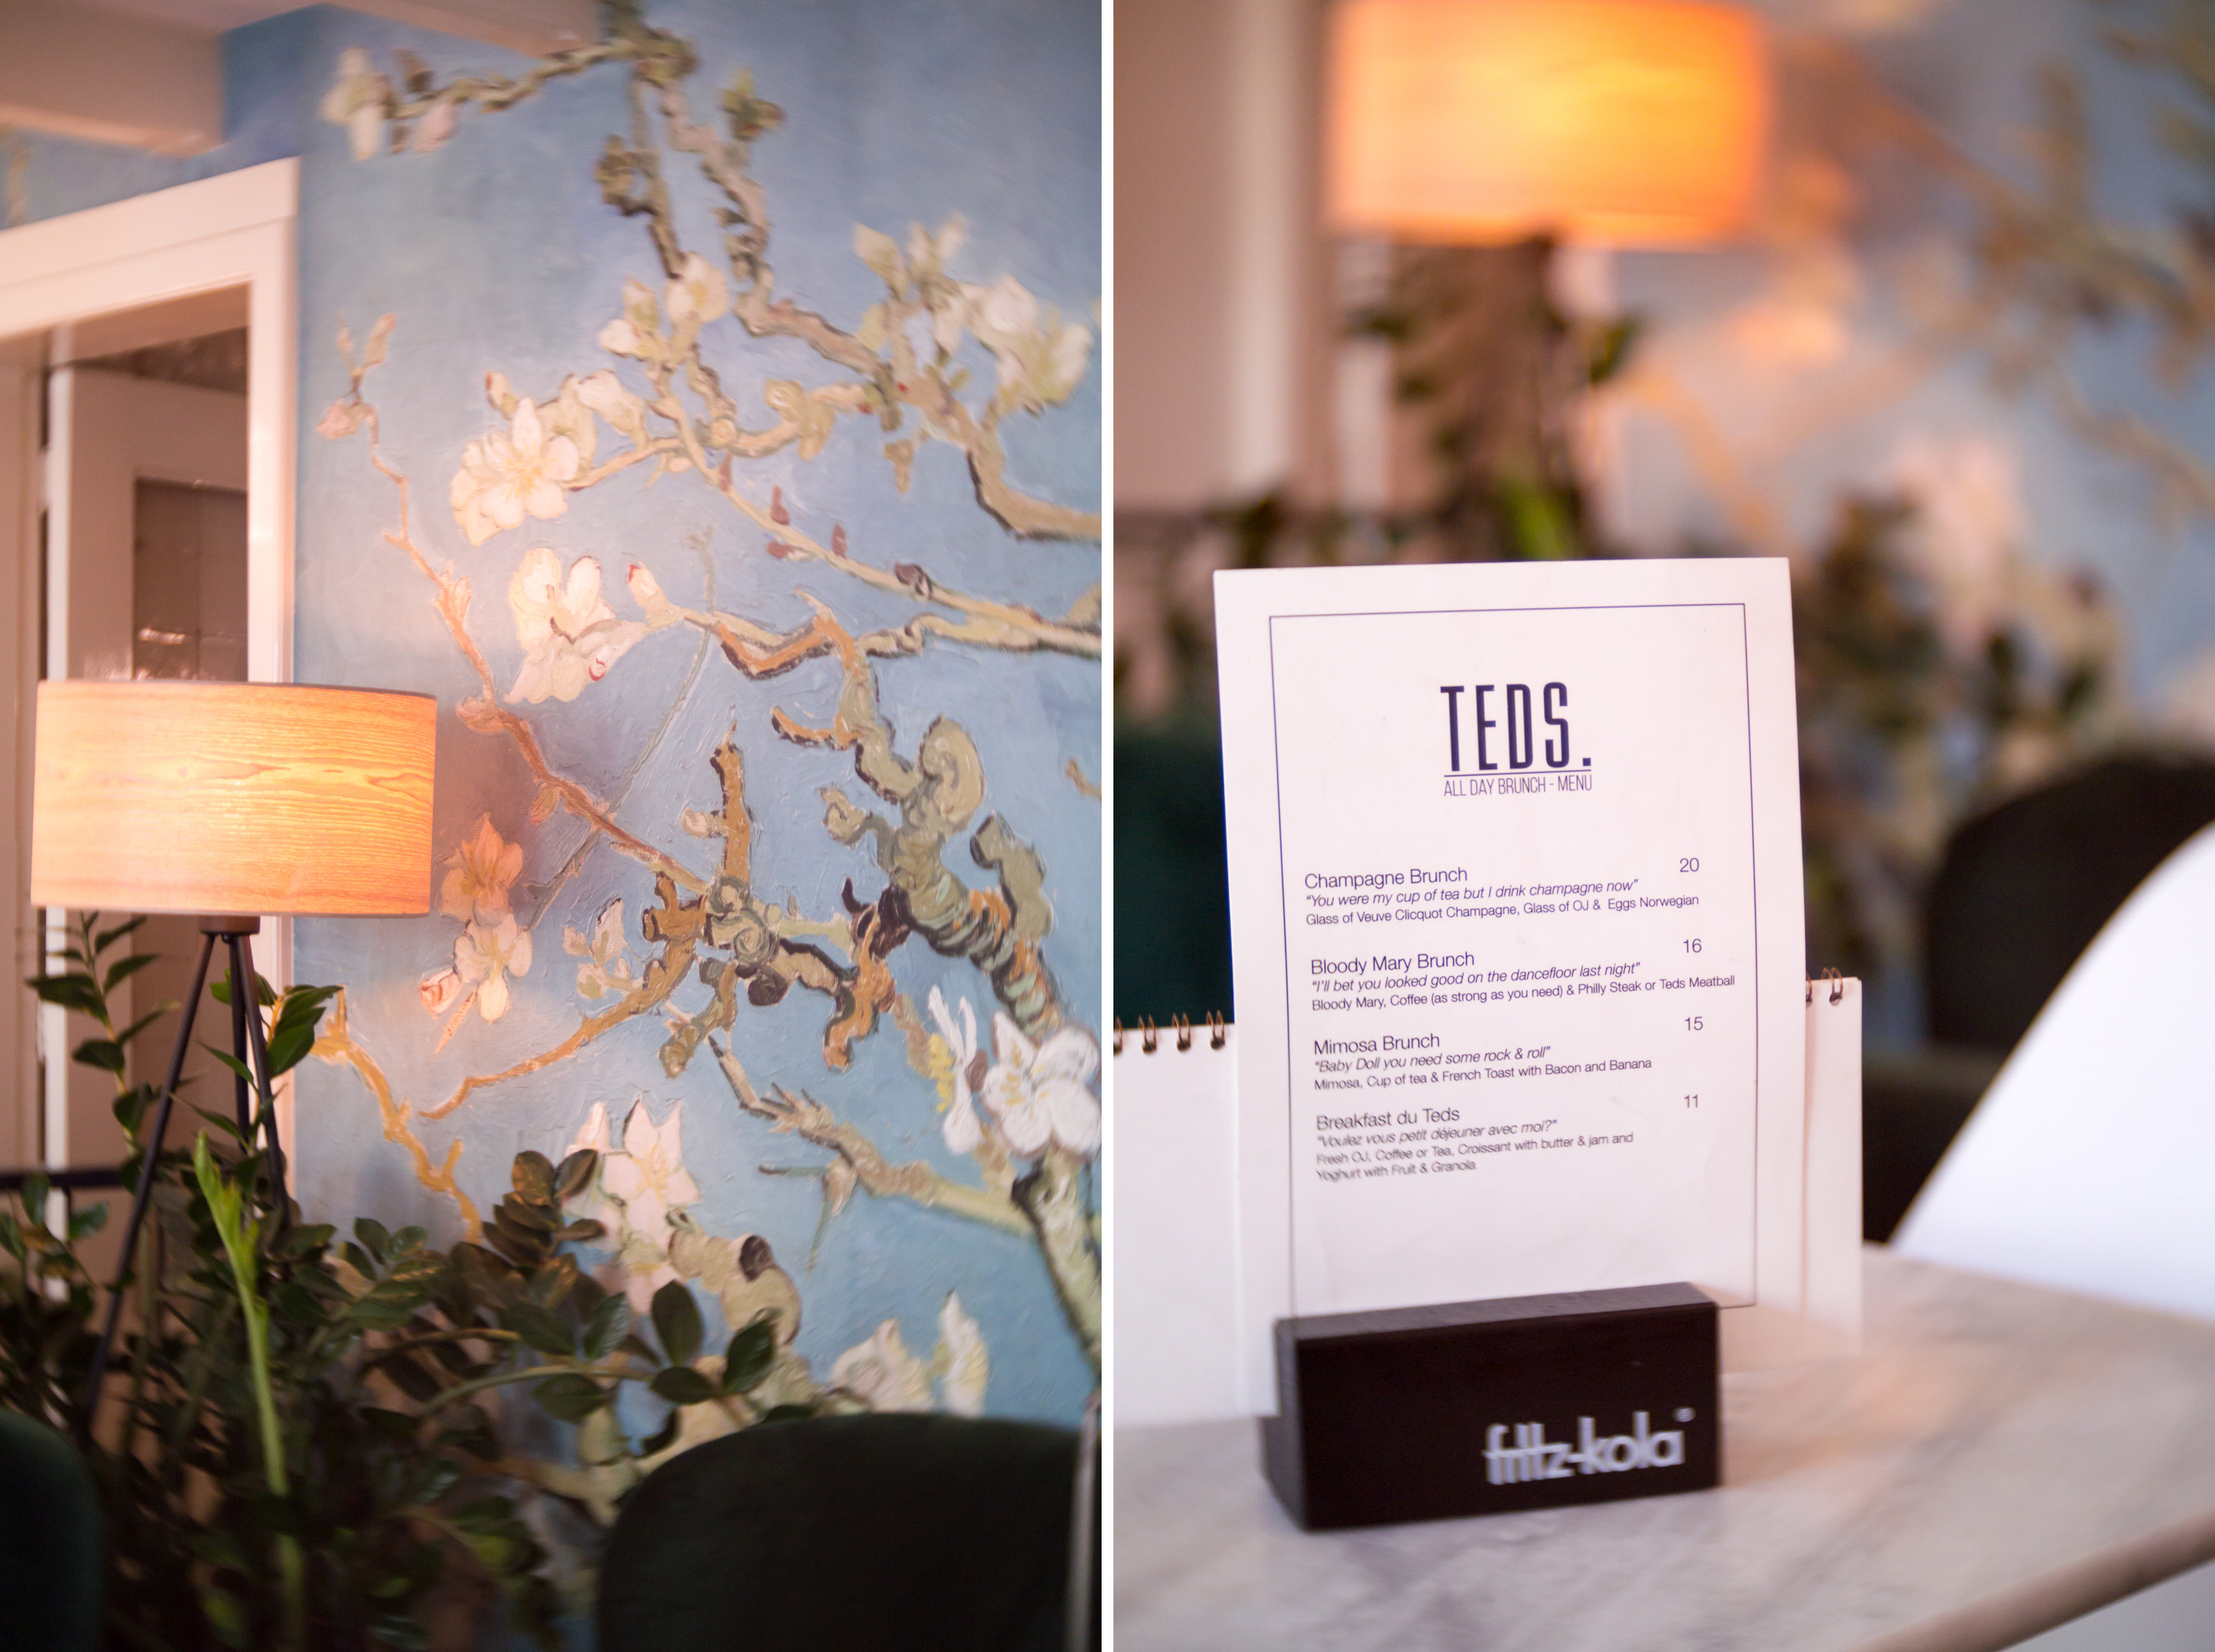 teds-all-day-bruch-utrecht-blogger-review